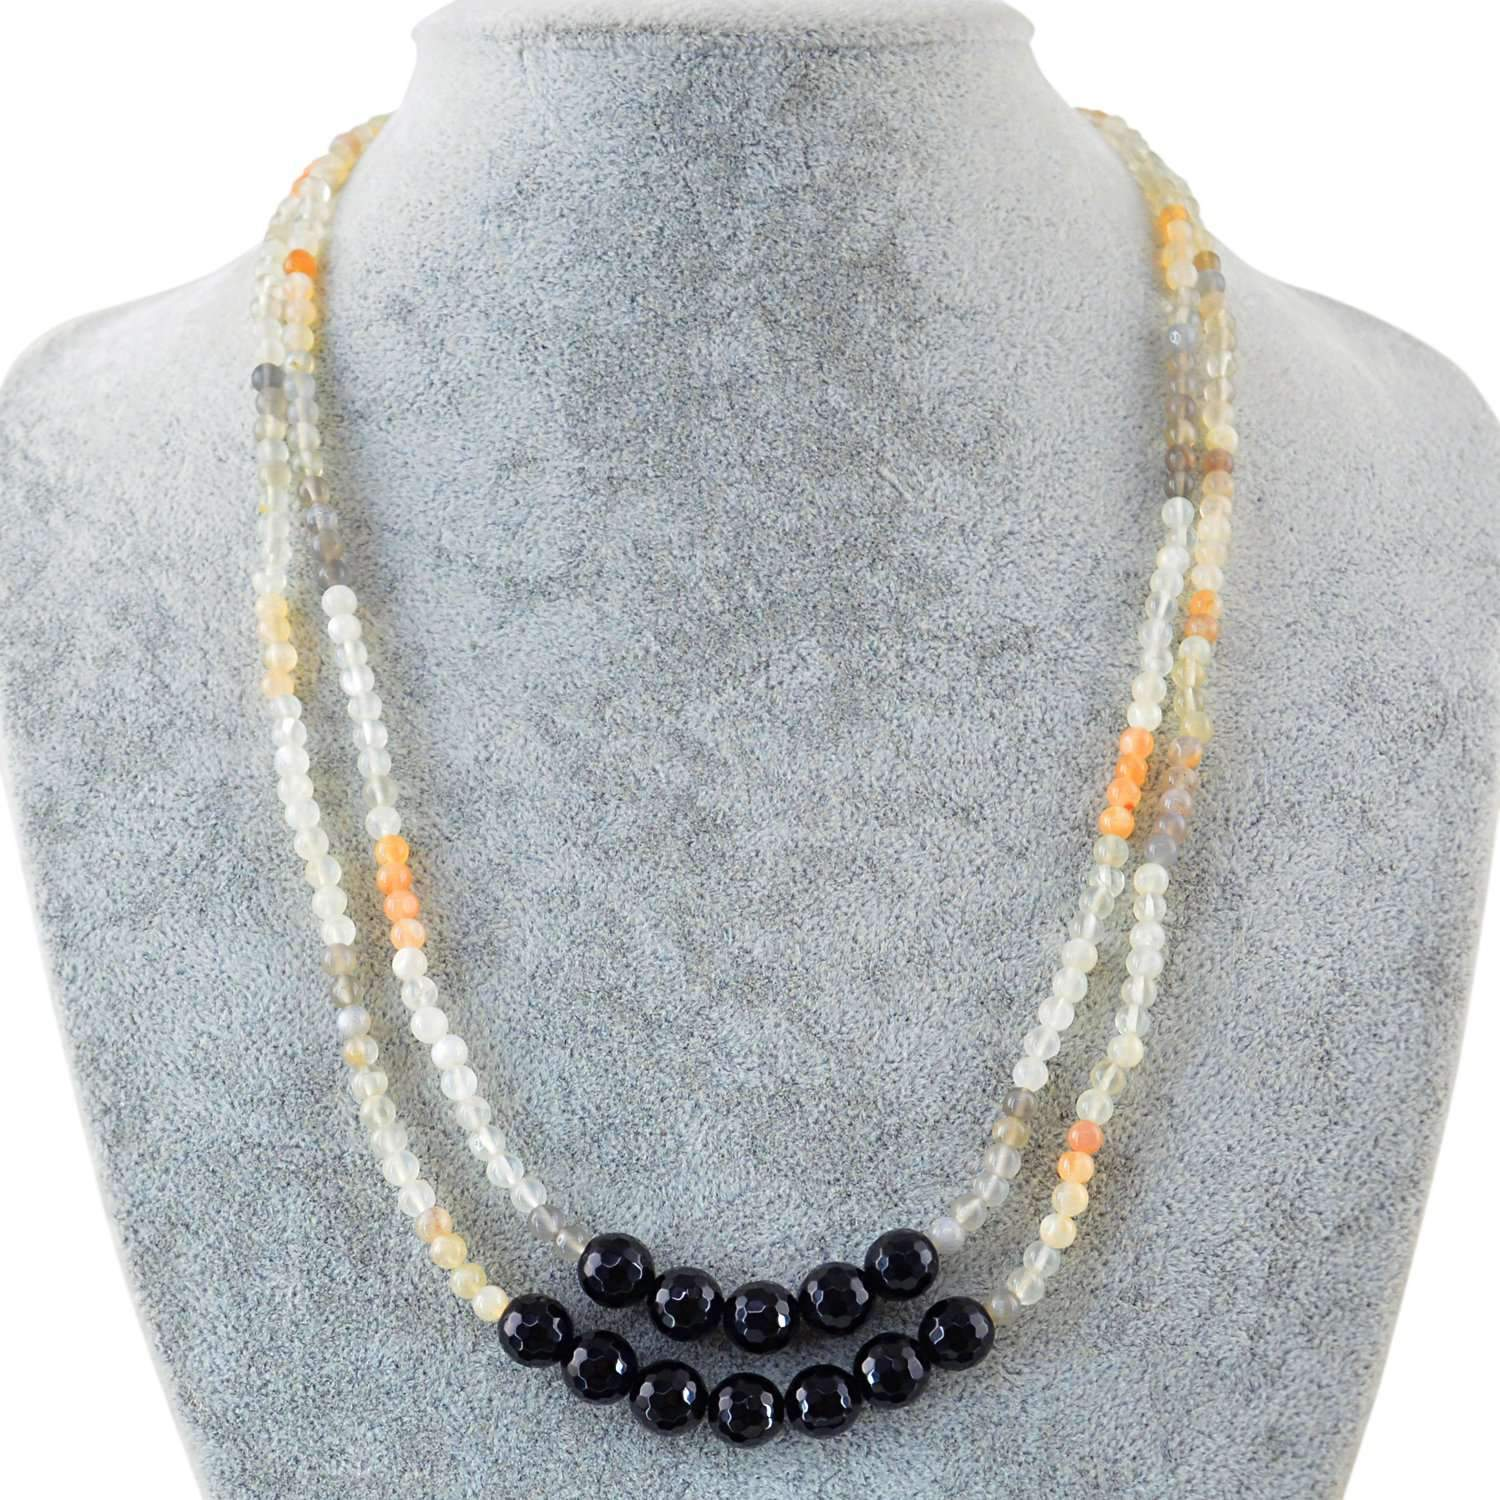 gemsmore:Natural Multicolor Moonstone & Black Spinel Necklace 2 Strand Faceted Beads